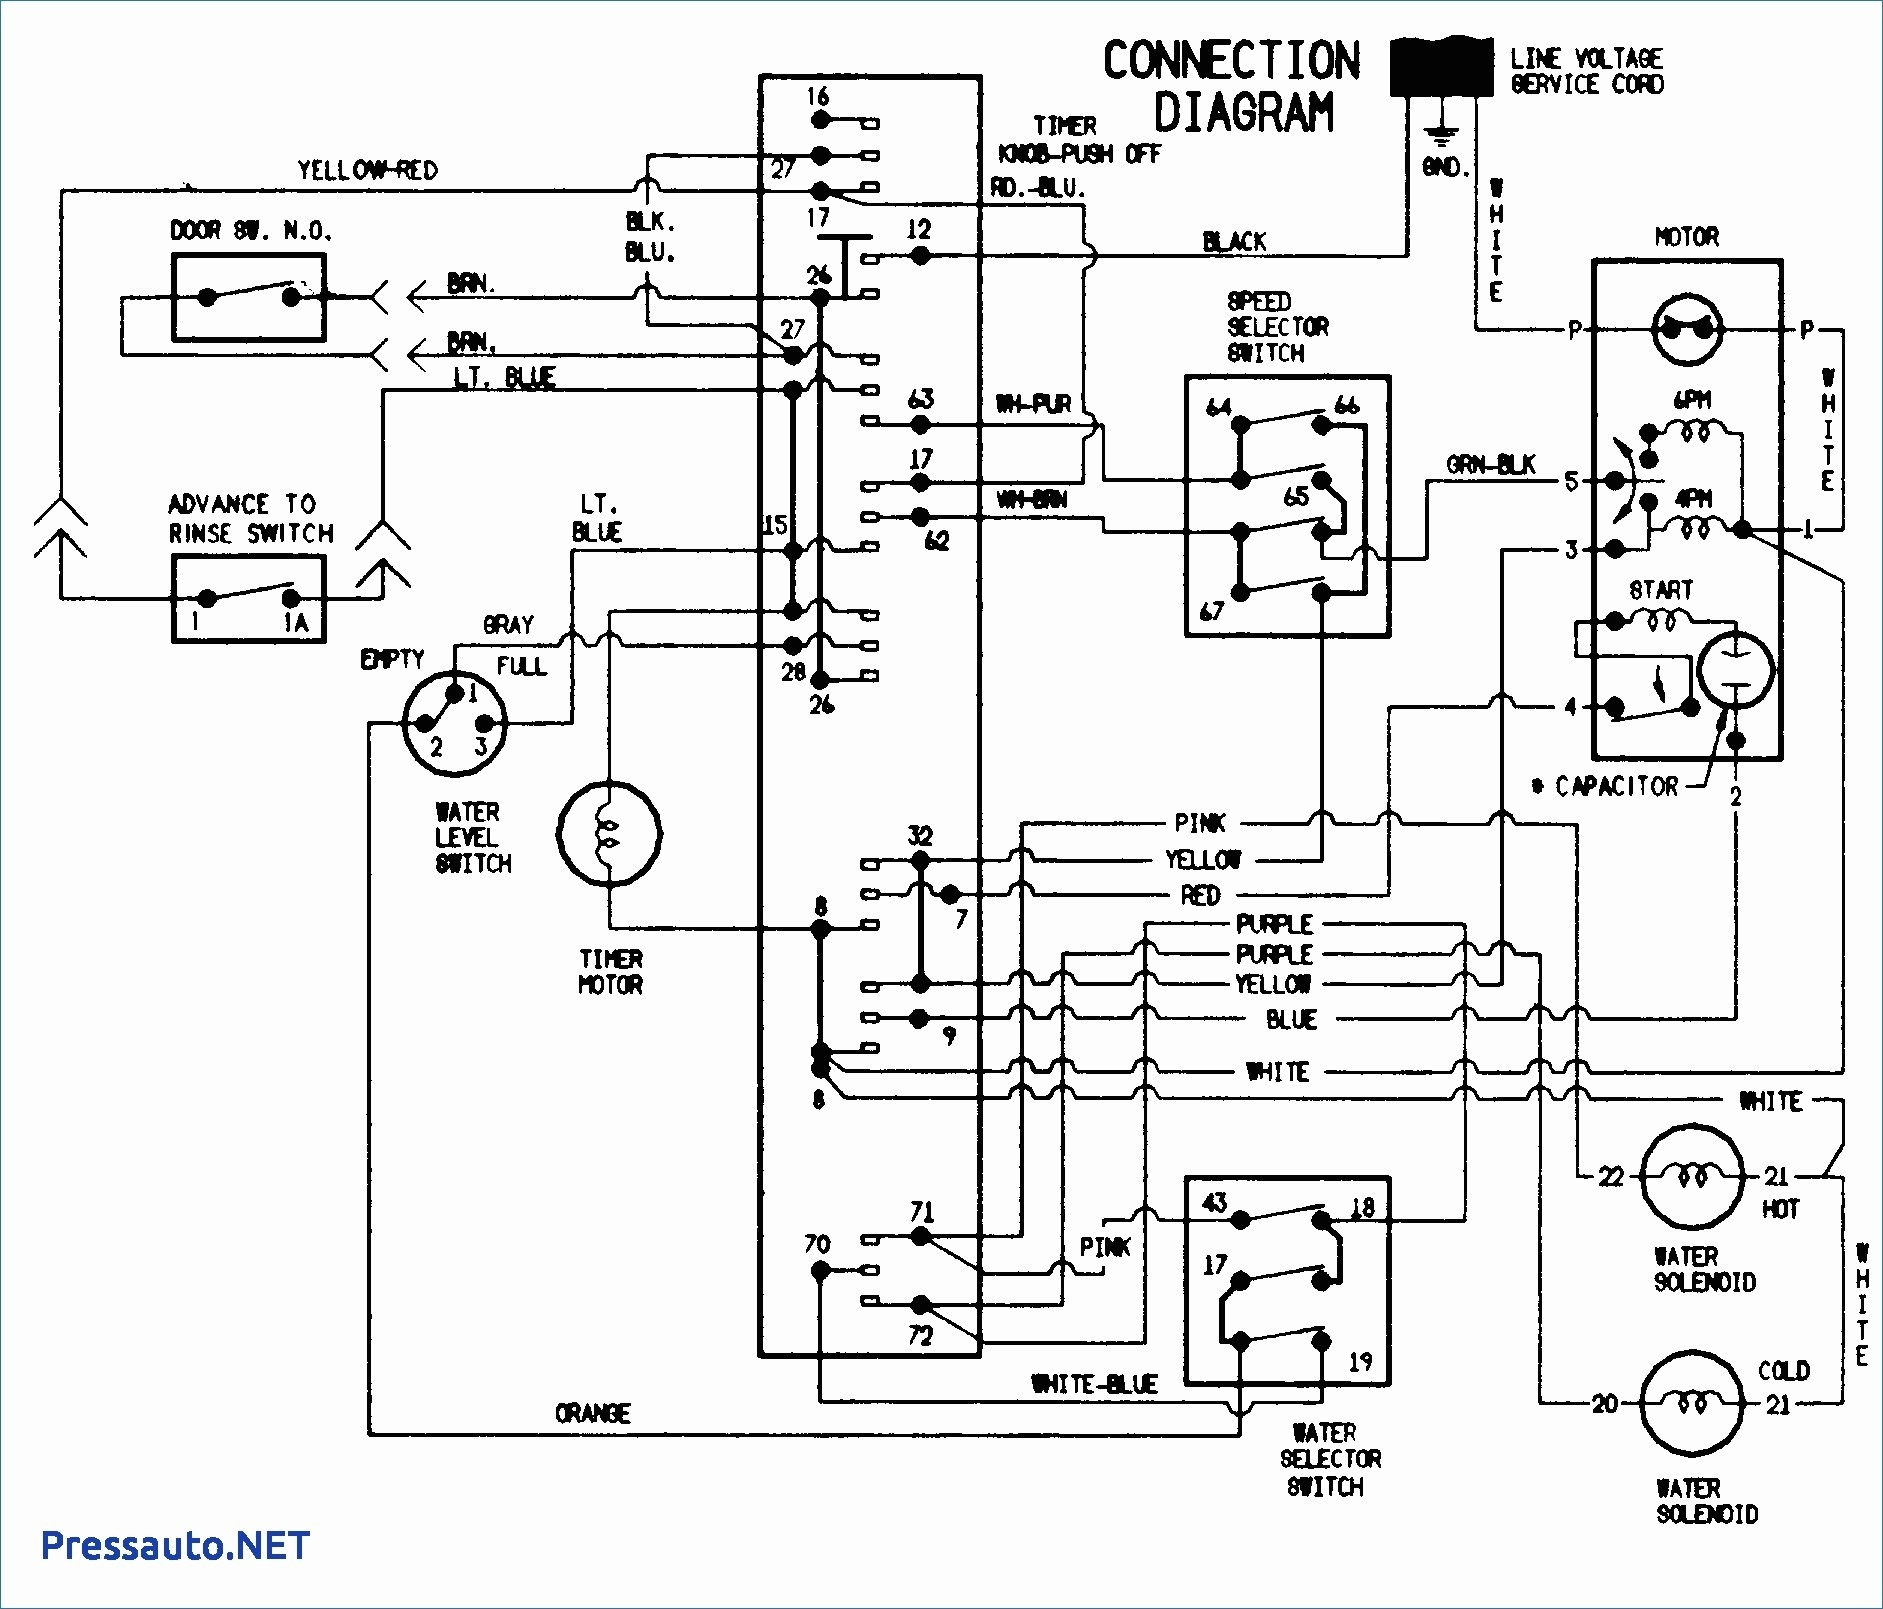 maytag dryer electrical schematic